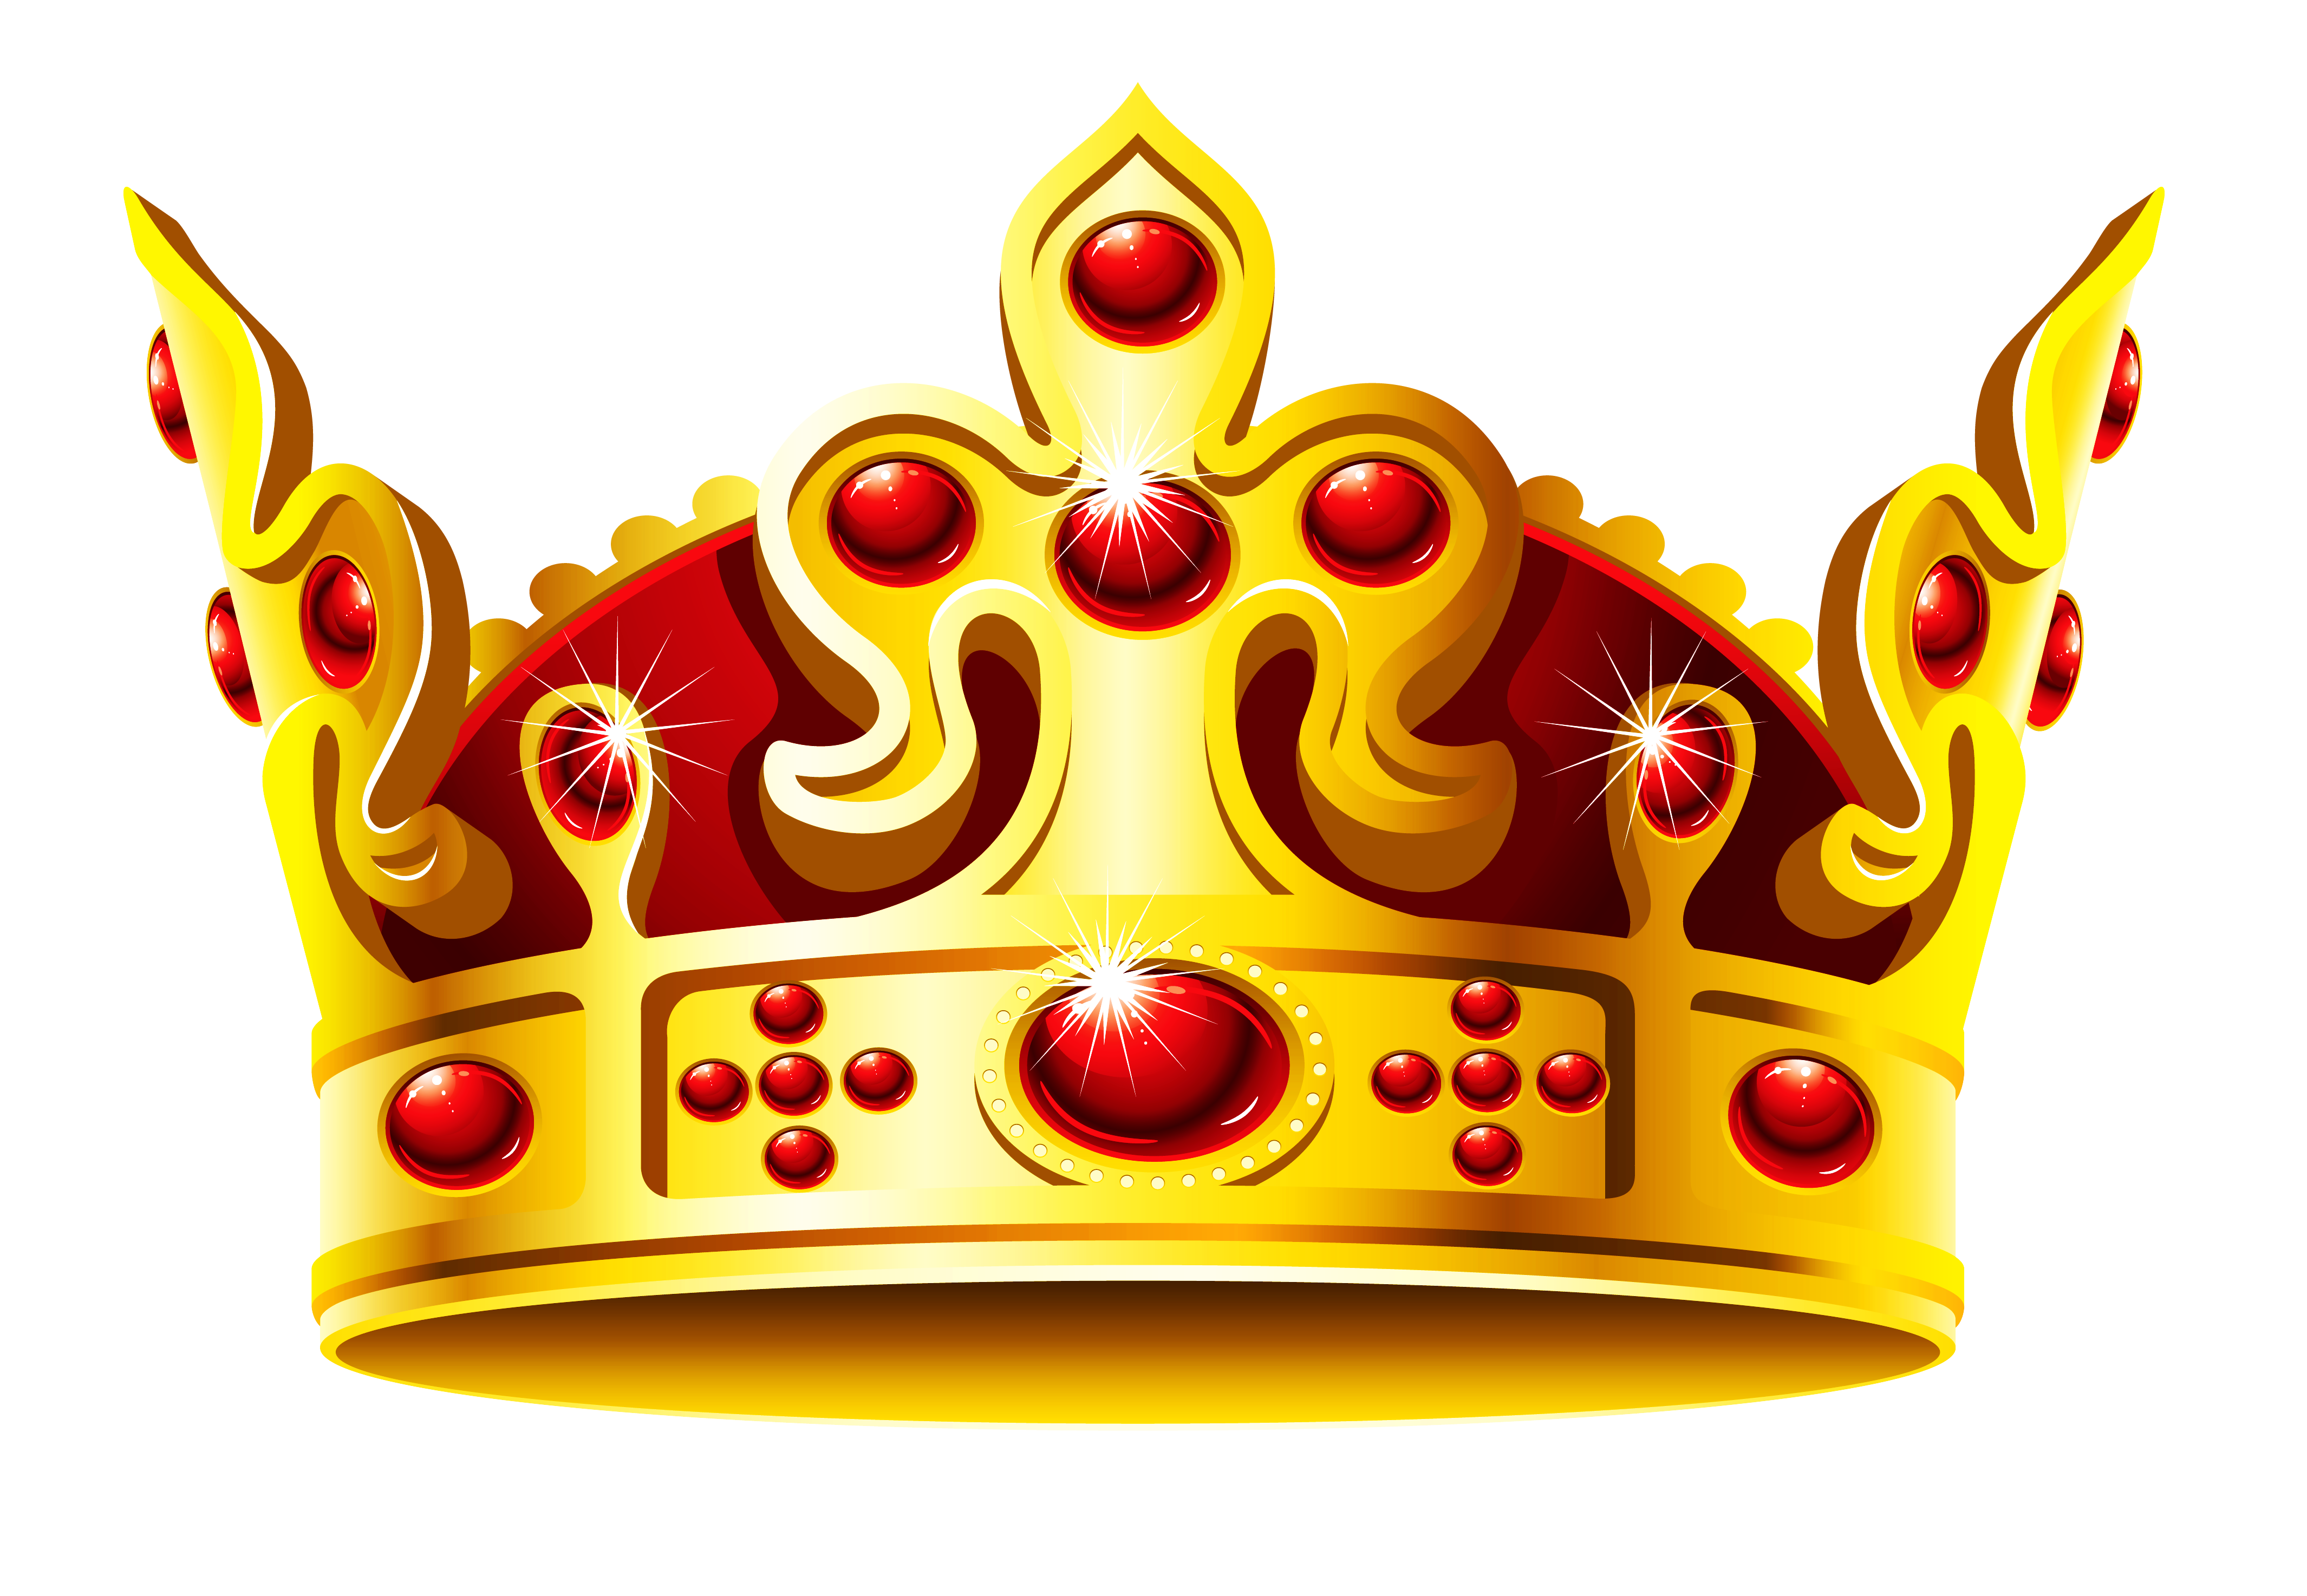 Corona de rey png. King crown clipart clipartfest